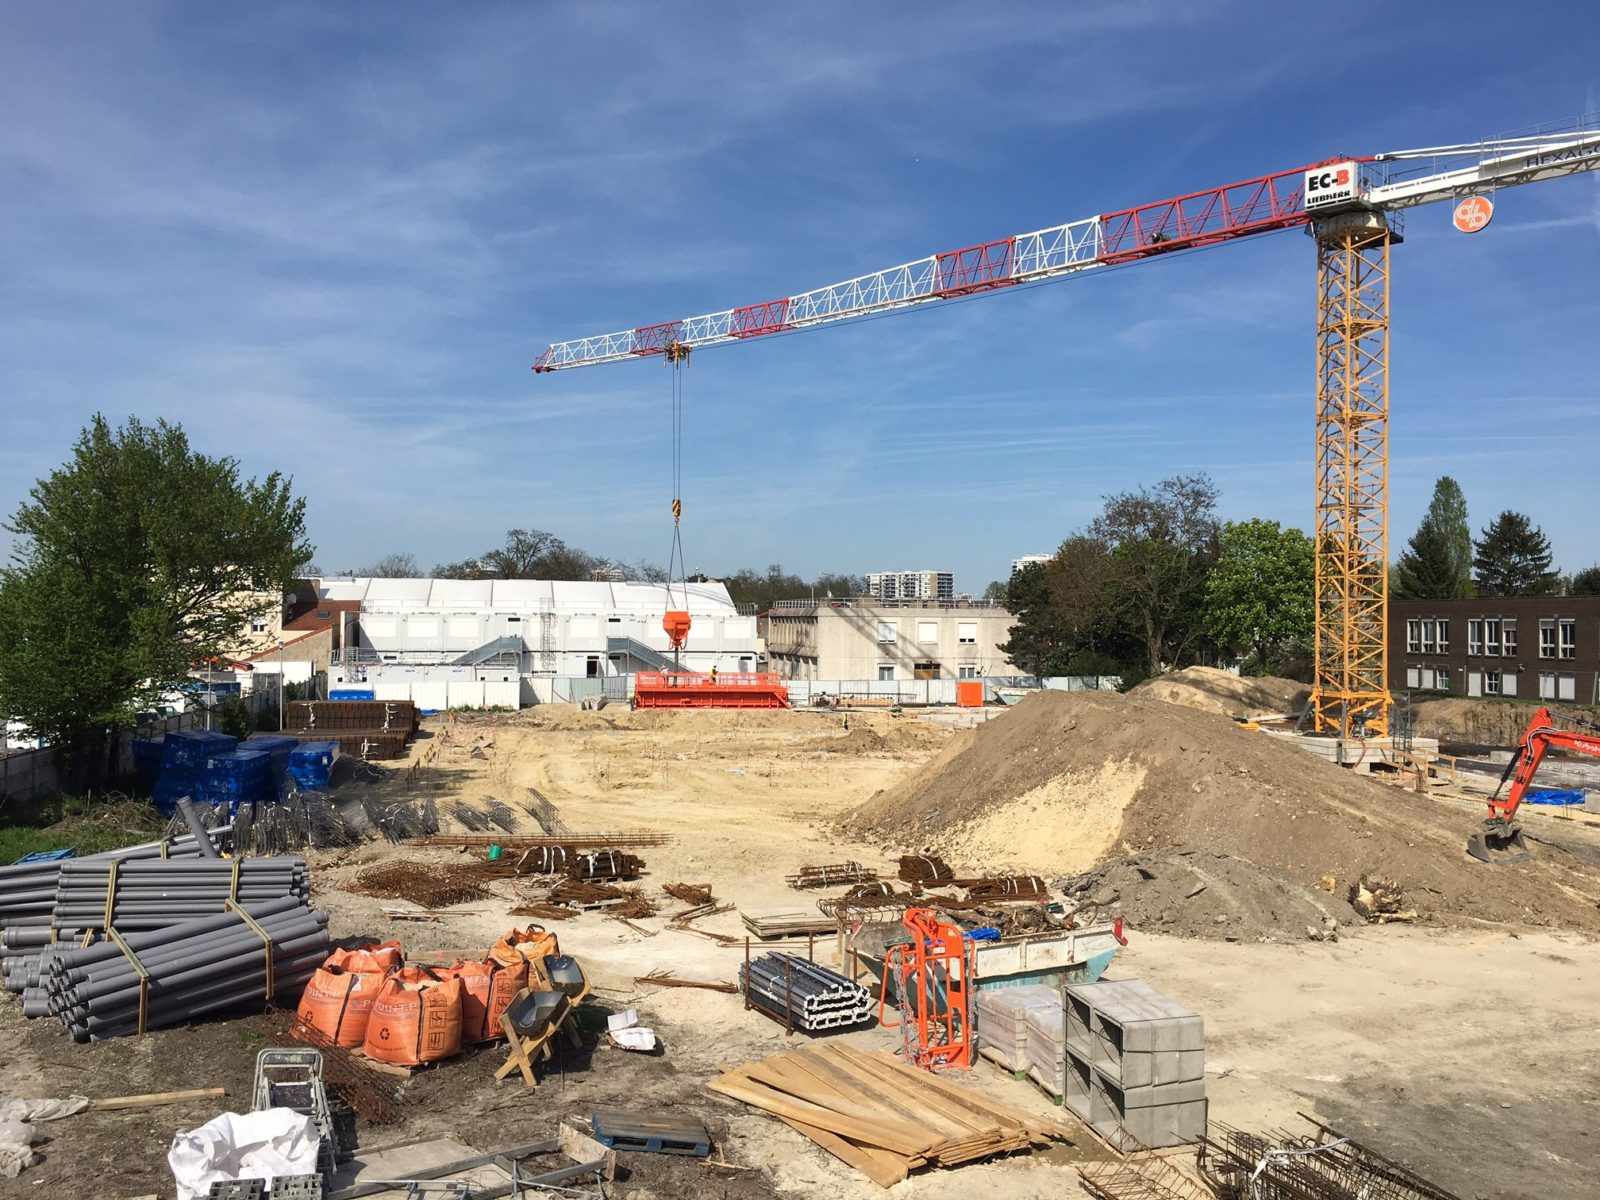 Photo du chantier - avril 2018